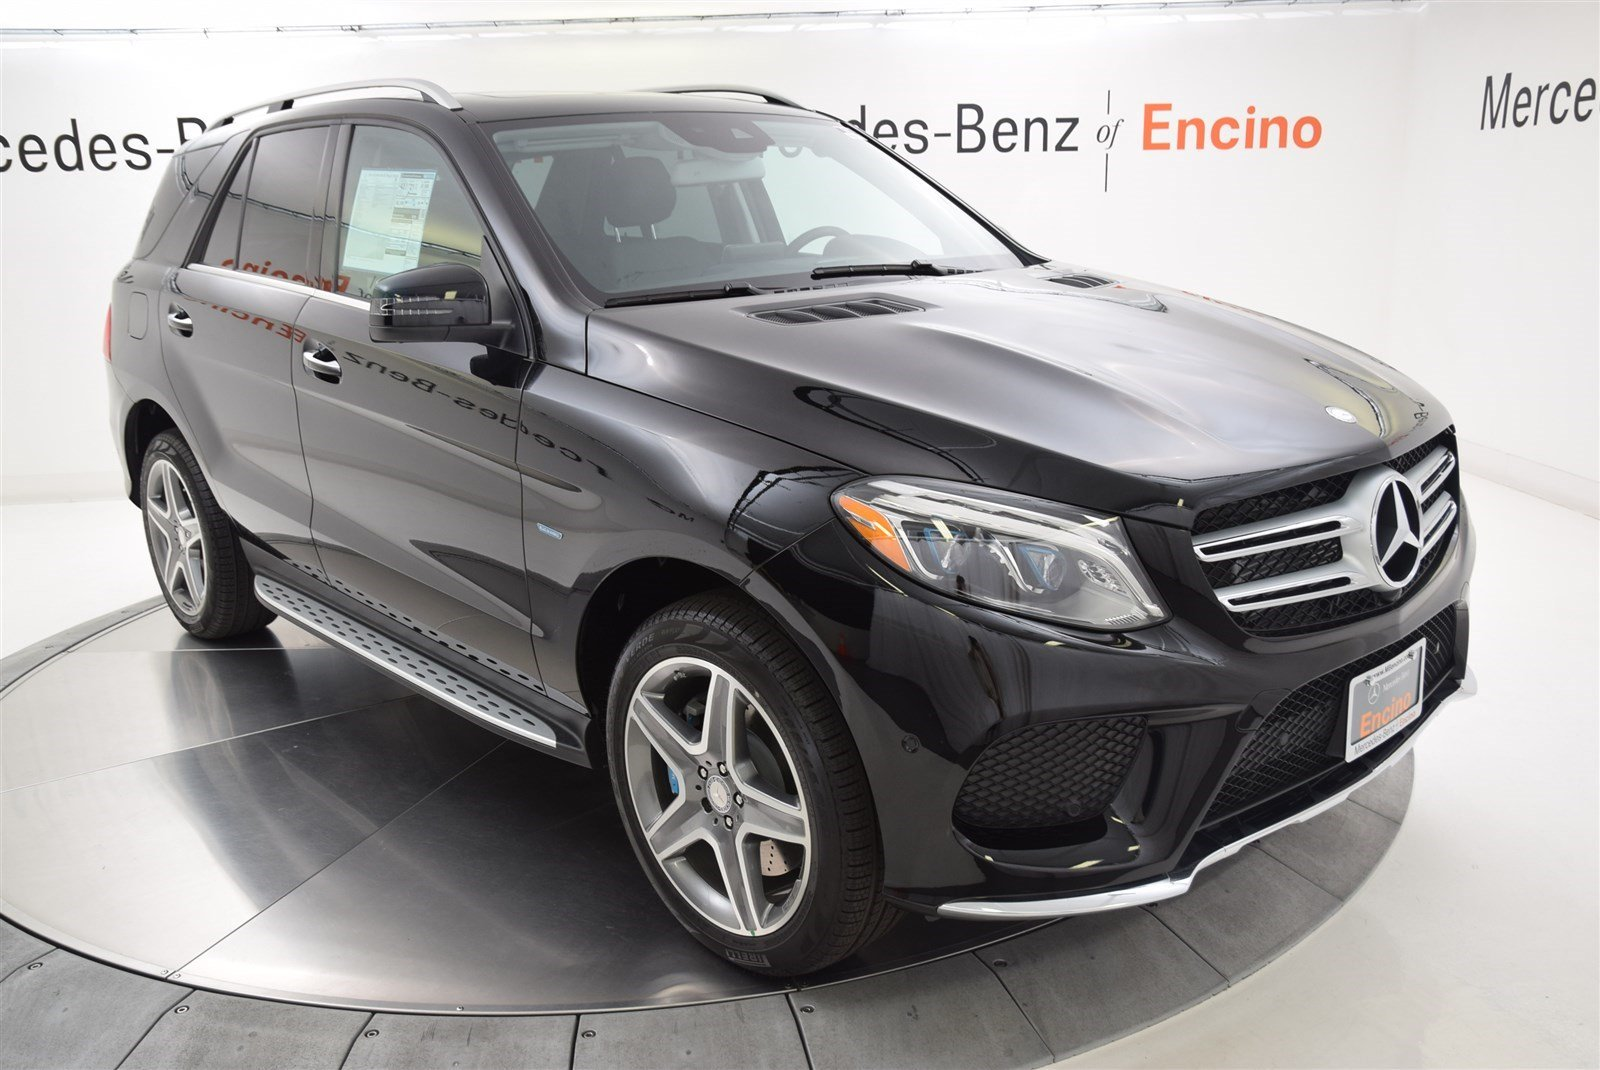 new 2016 mercedes benz gle gle550e 4matic sport utility in encino 54234 mercedes benz of encino. Black Bedroom Furniture Sets. Home Design Ideas